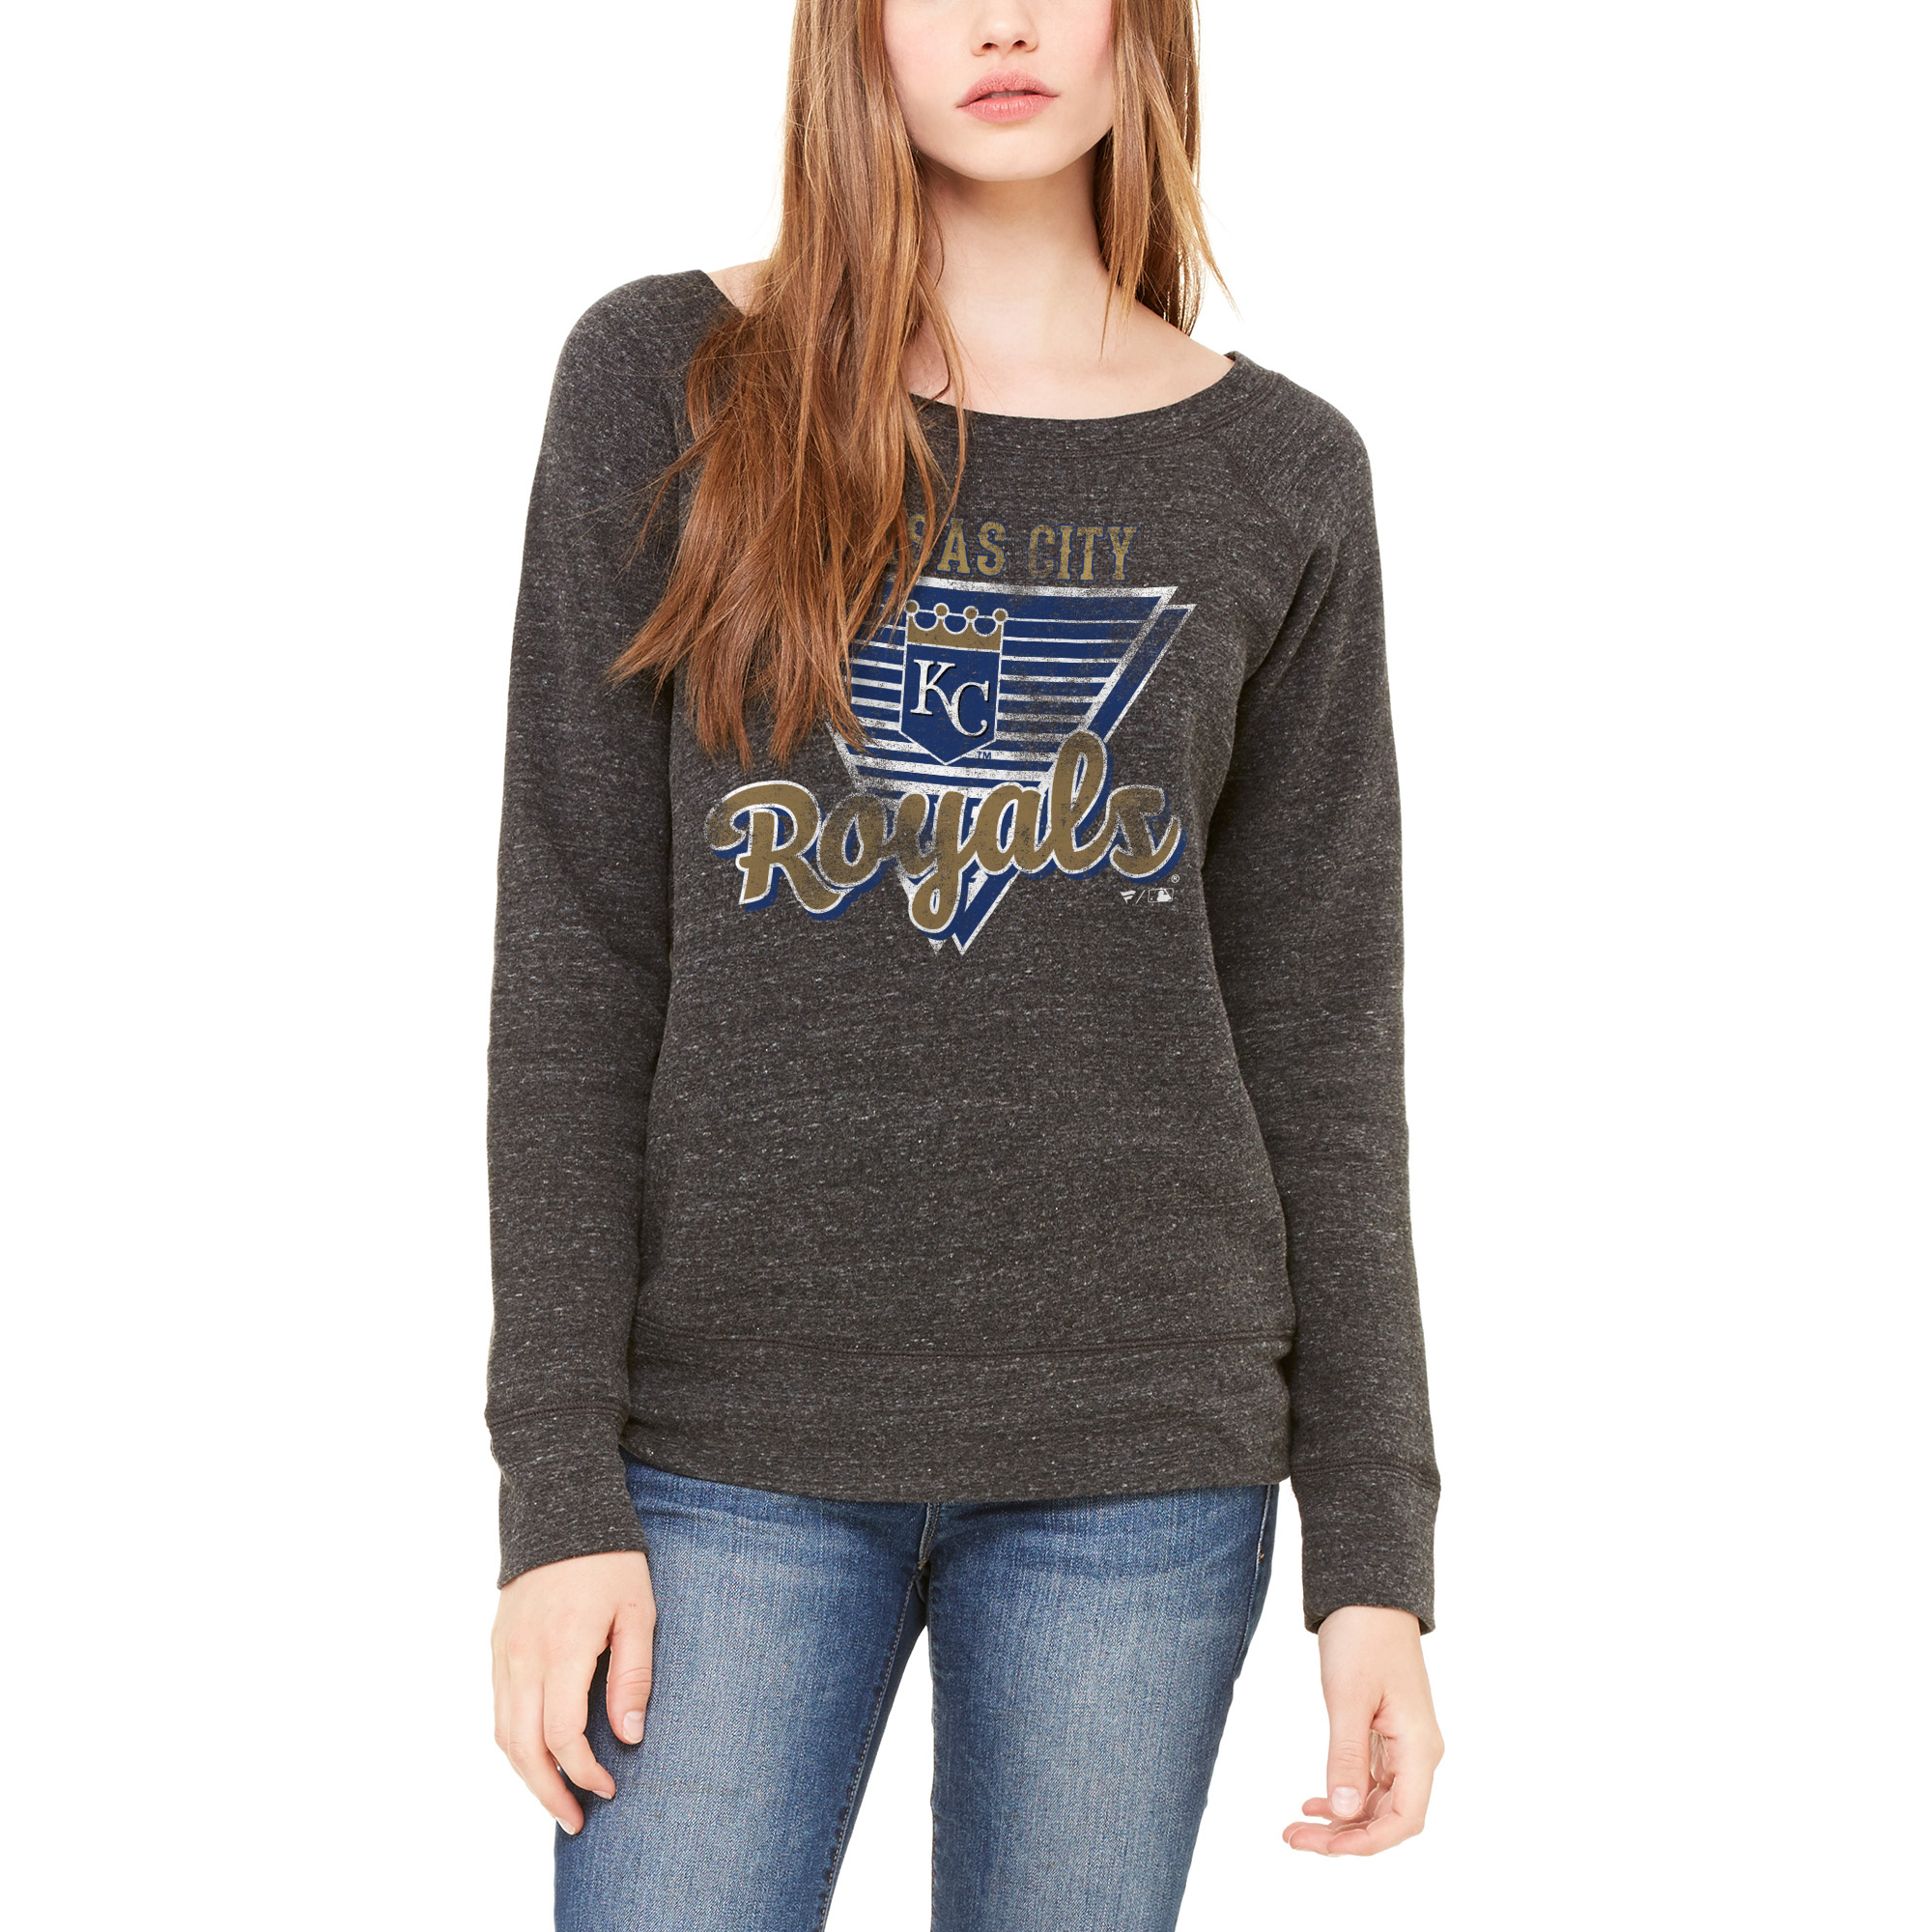 Kansas City Royals Let Loose by RNL Women's Eighty Something Wide Neck Sweatshirt - Charcoal